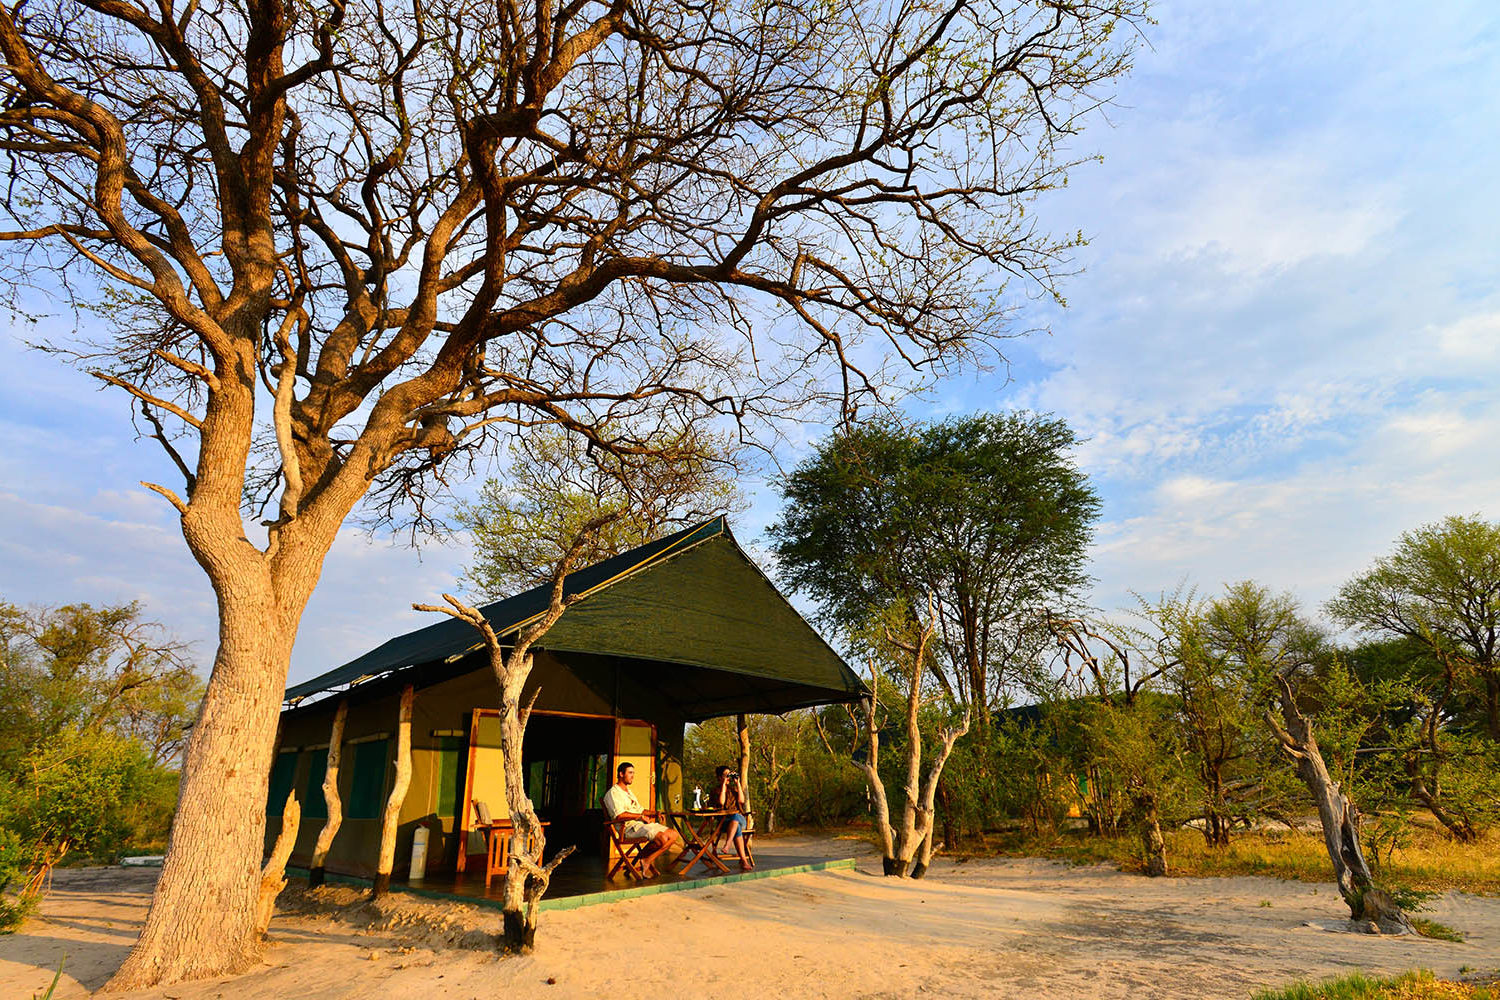 bomani tented lodge hwange-national-park-lodges-zimbabwe-accommodation-landscape